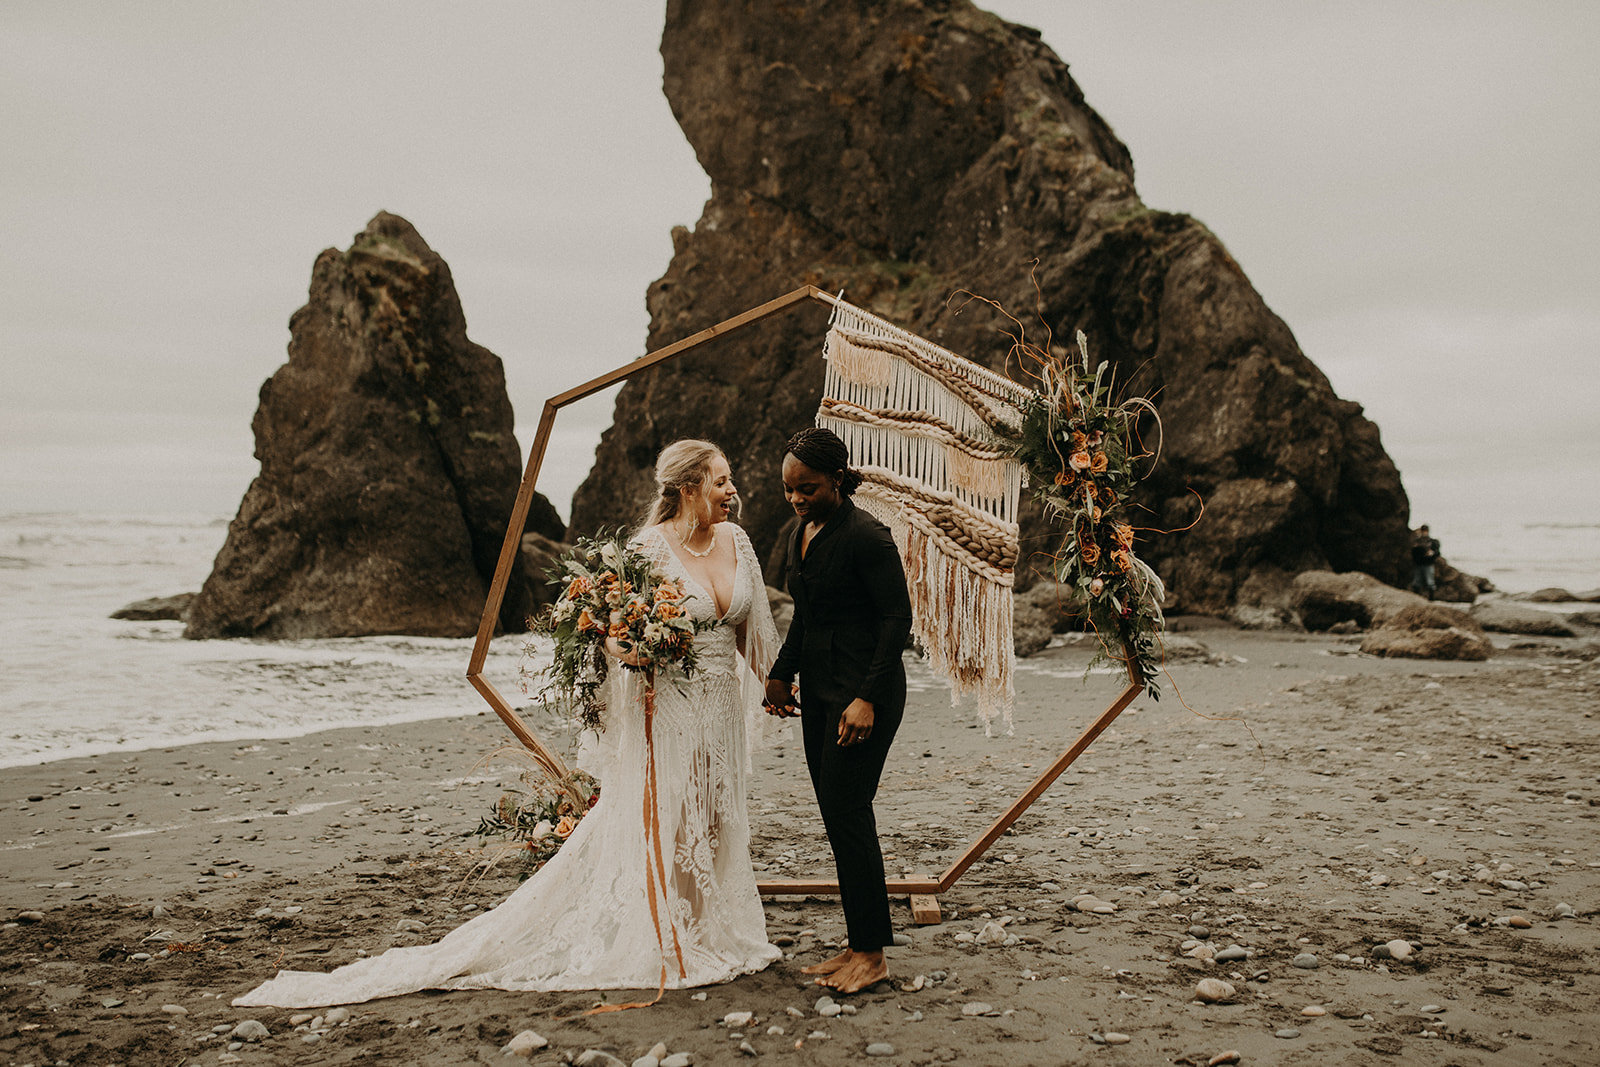 Ruby_Beach_Styled_Elopement_-_Run_Away_with_Me_Elopement_Collective_-_Kamra_Fuller_Photography_-_Ceremony-78